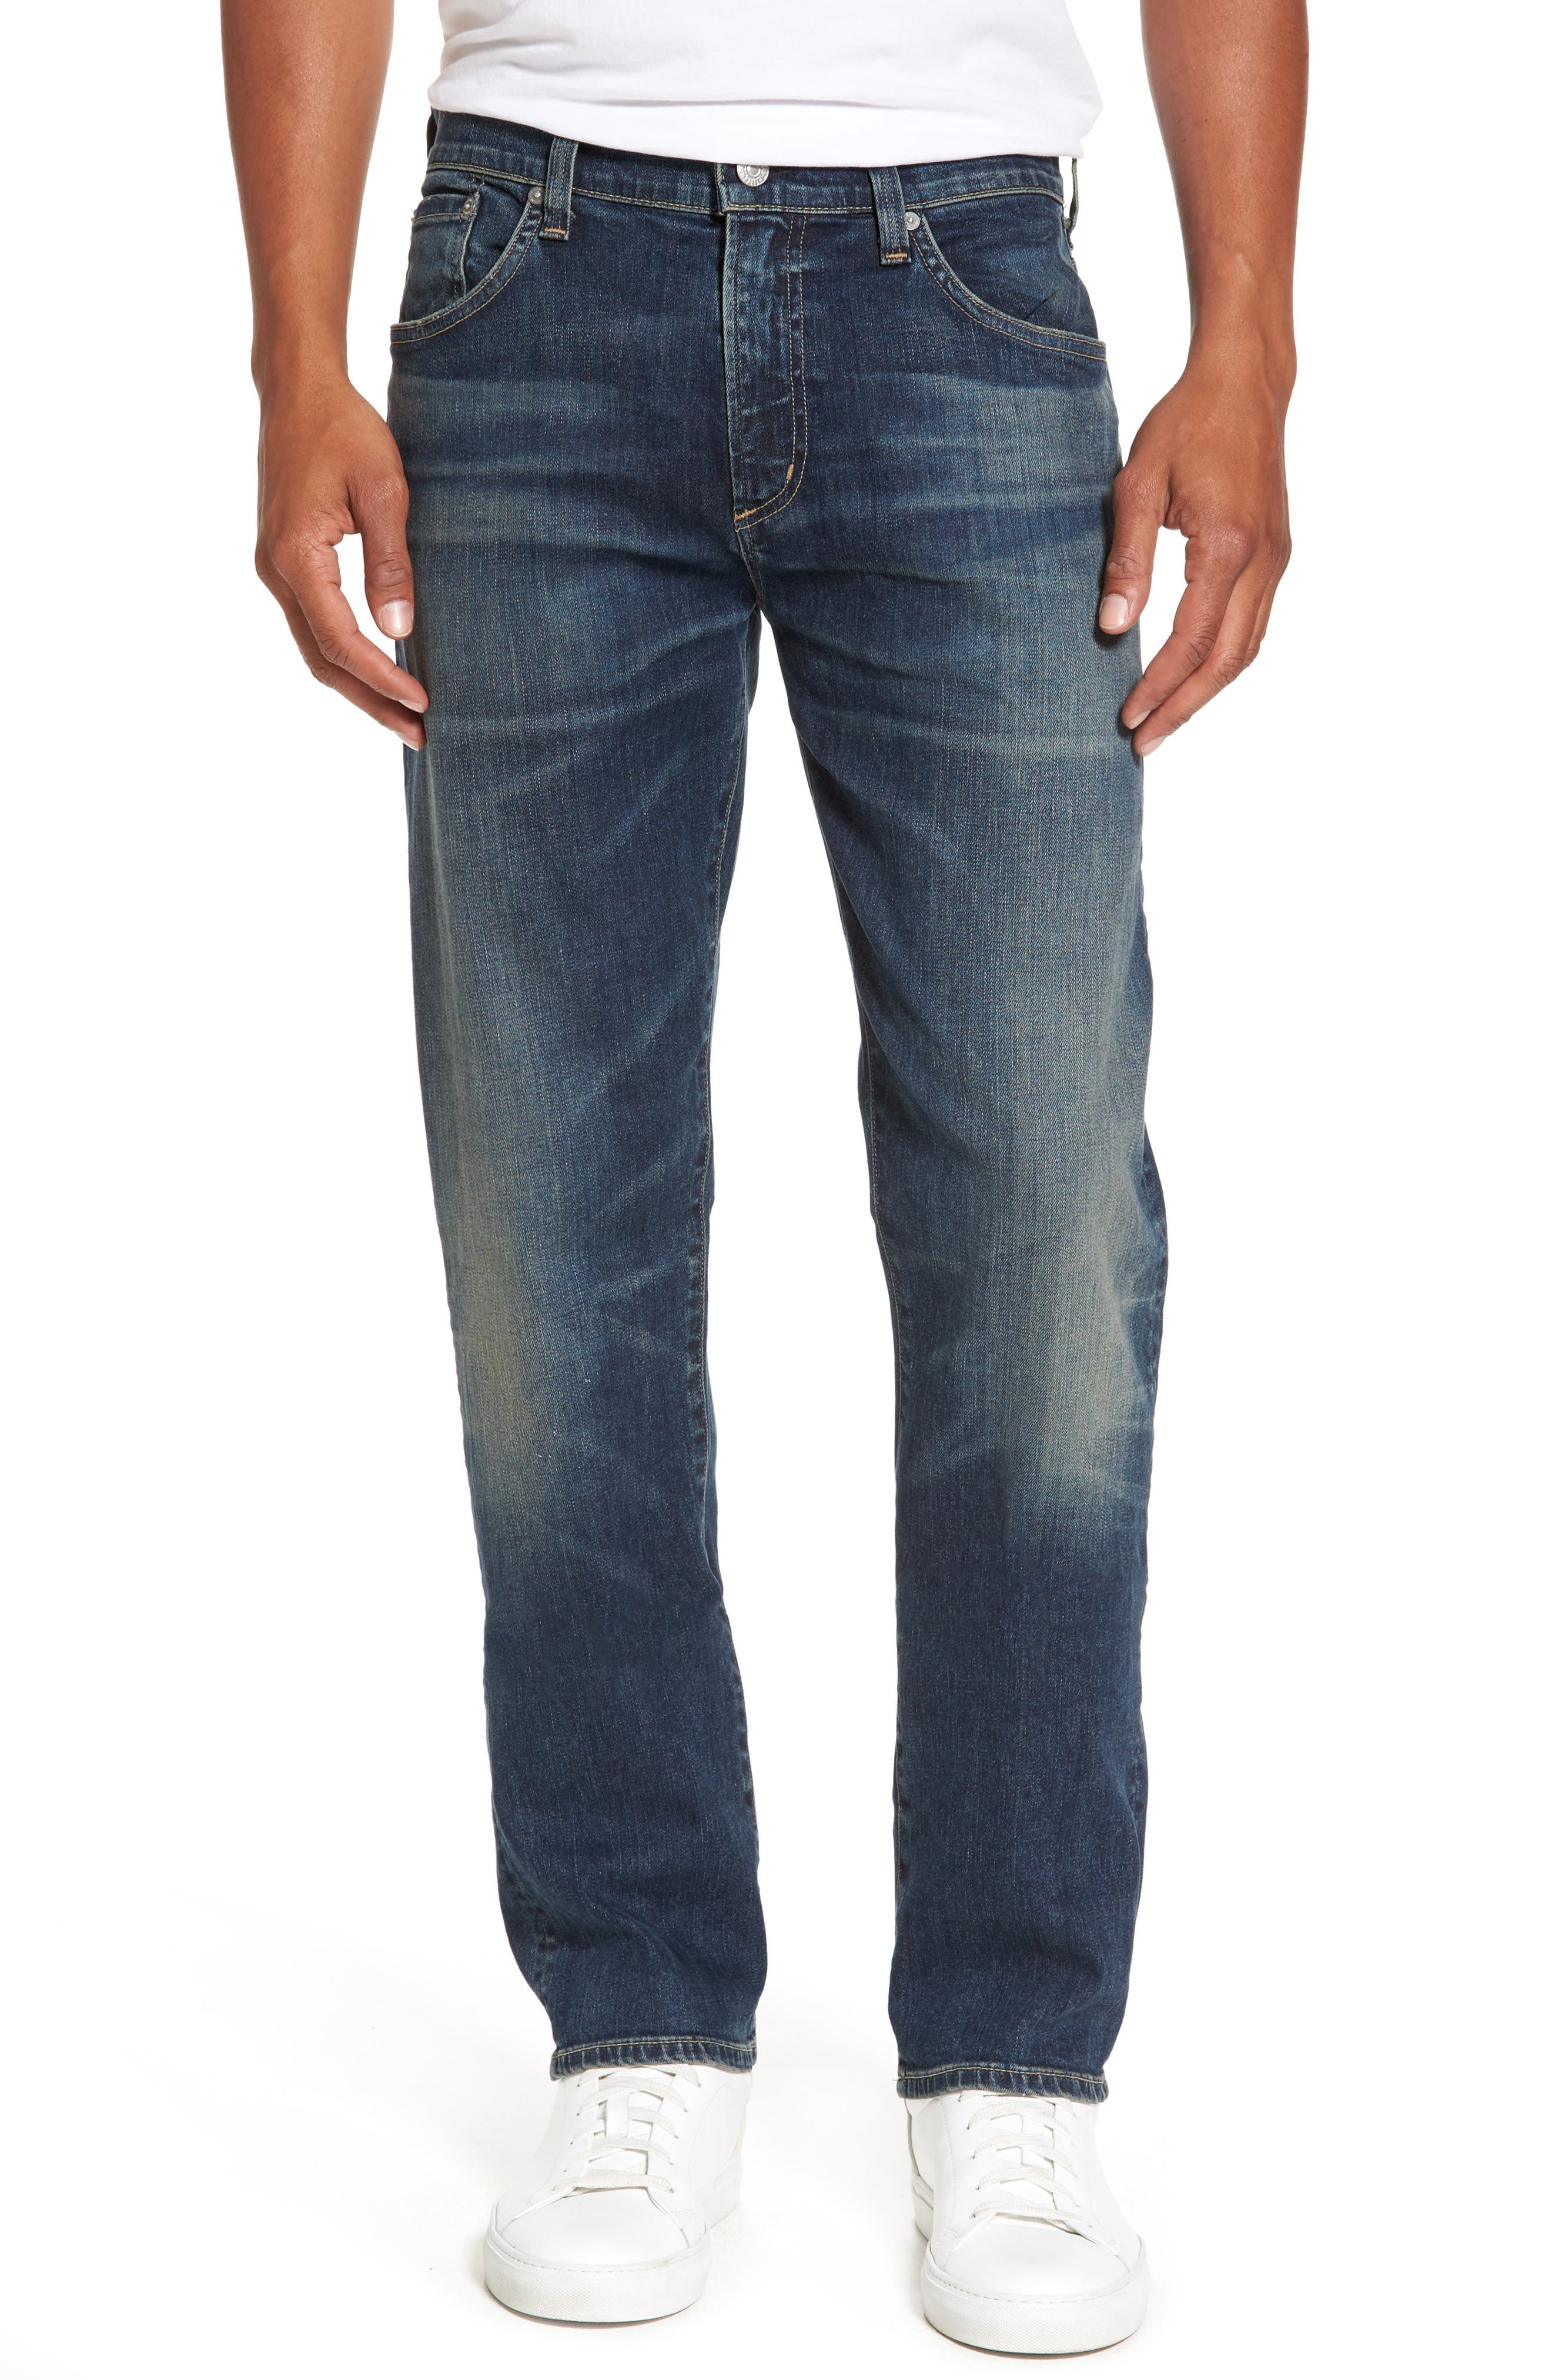 Core Slim Fit Jeans,                             Main thumbnail 1, color,                             472